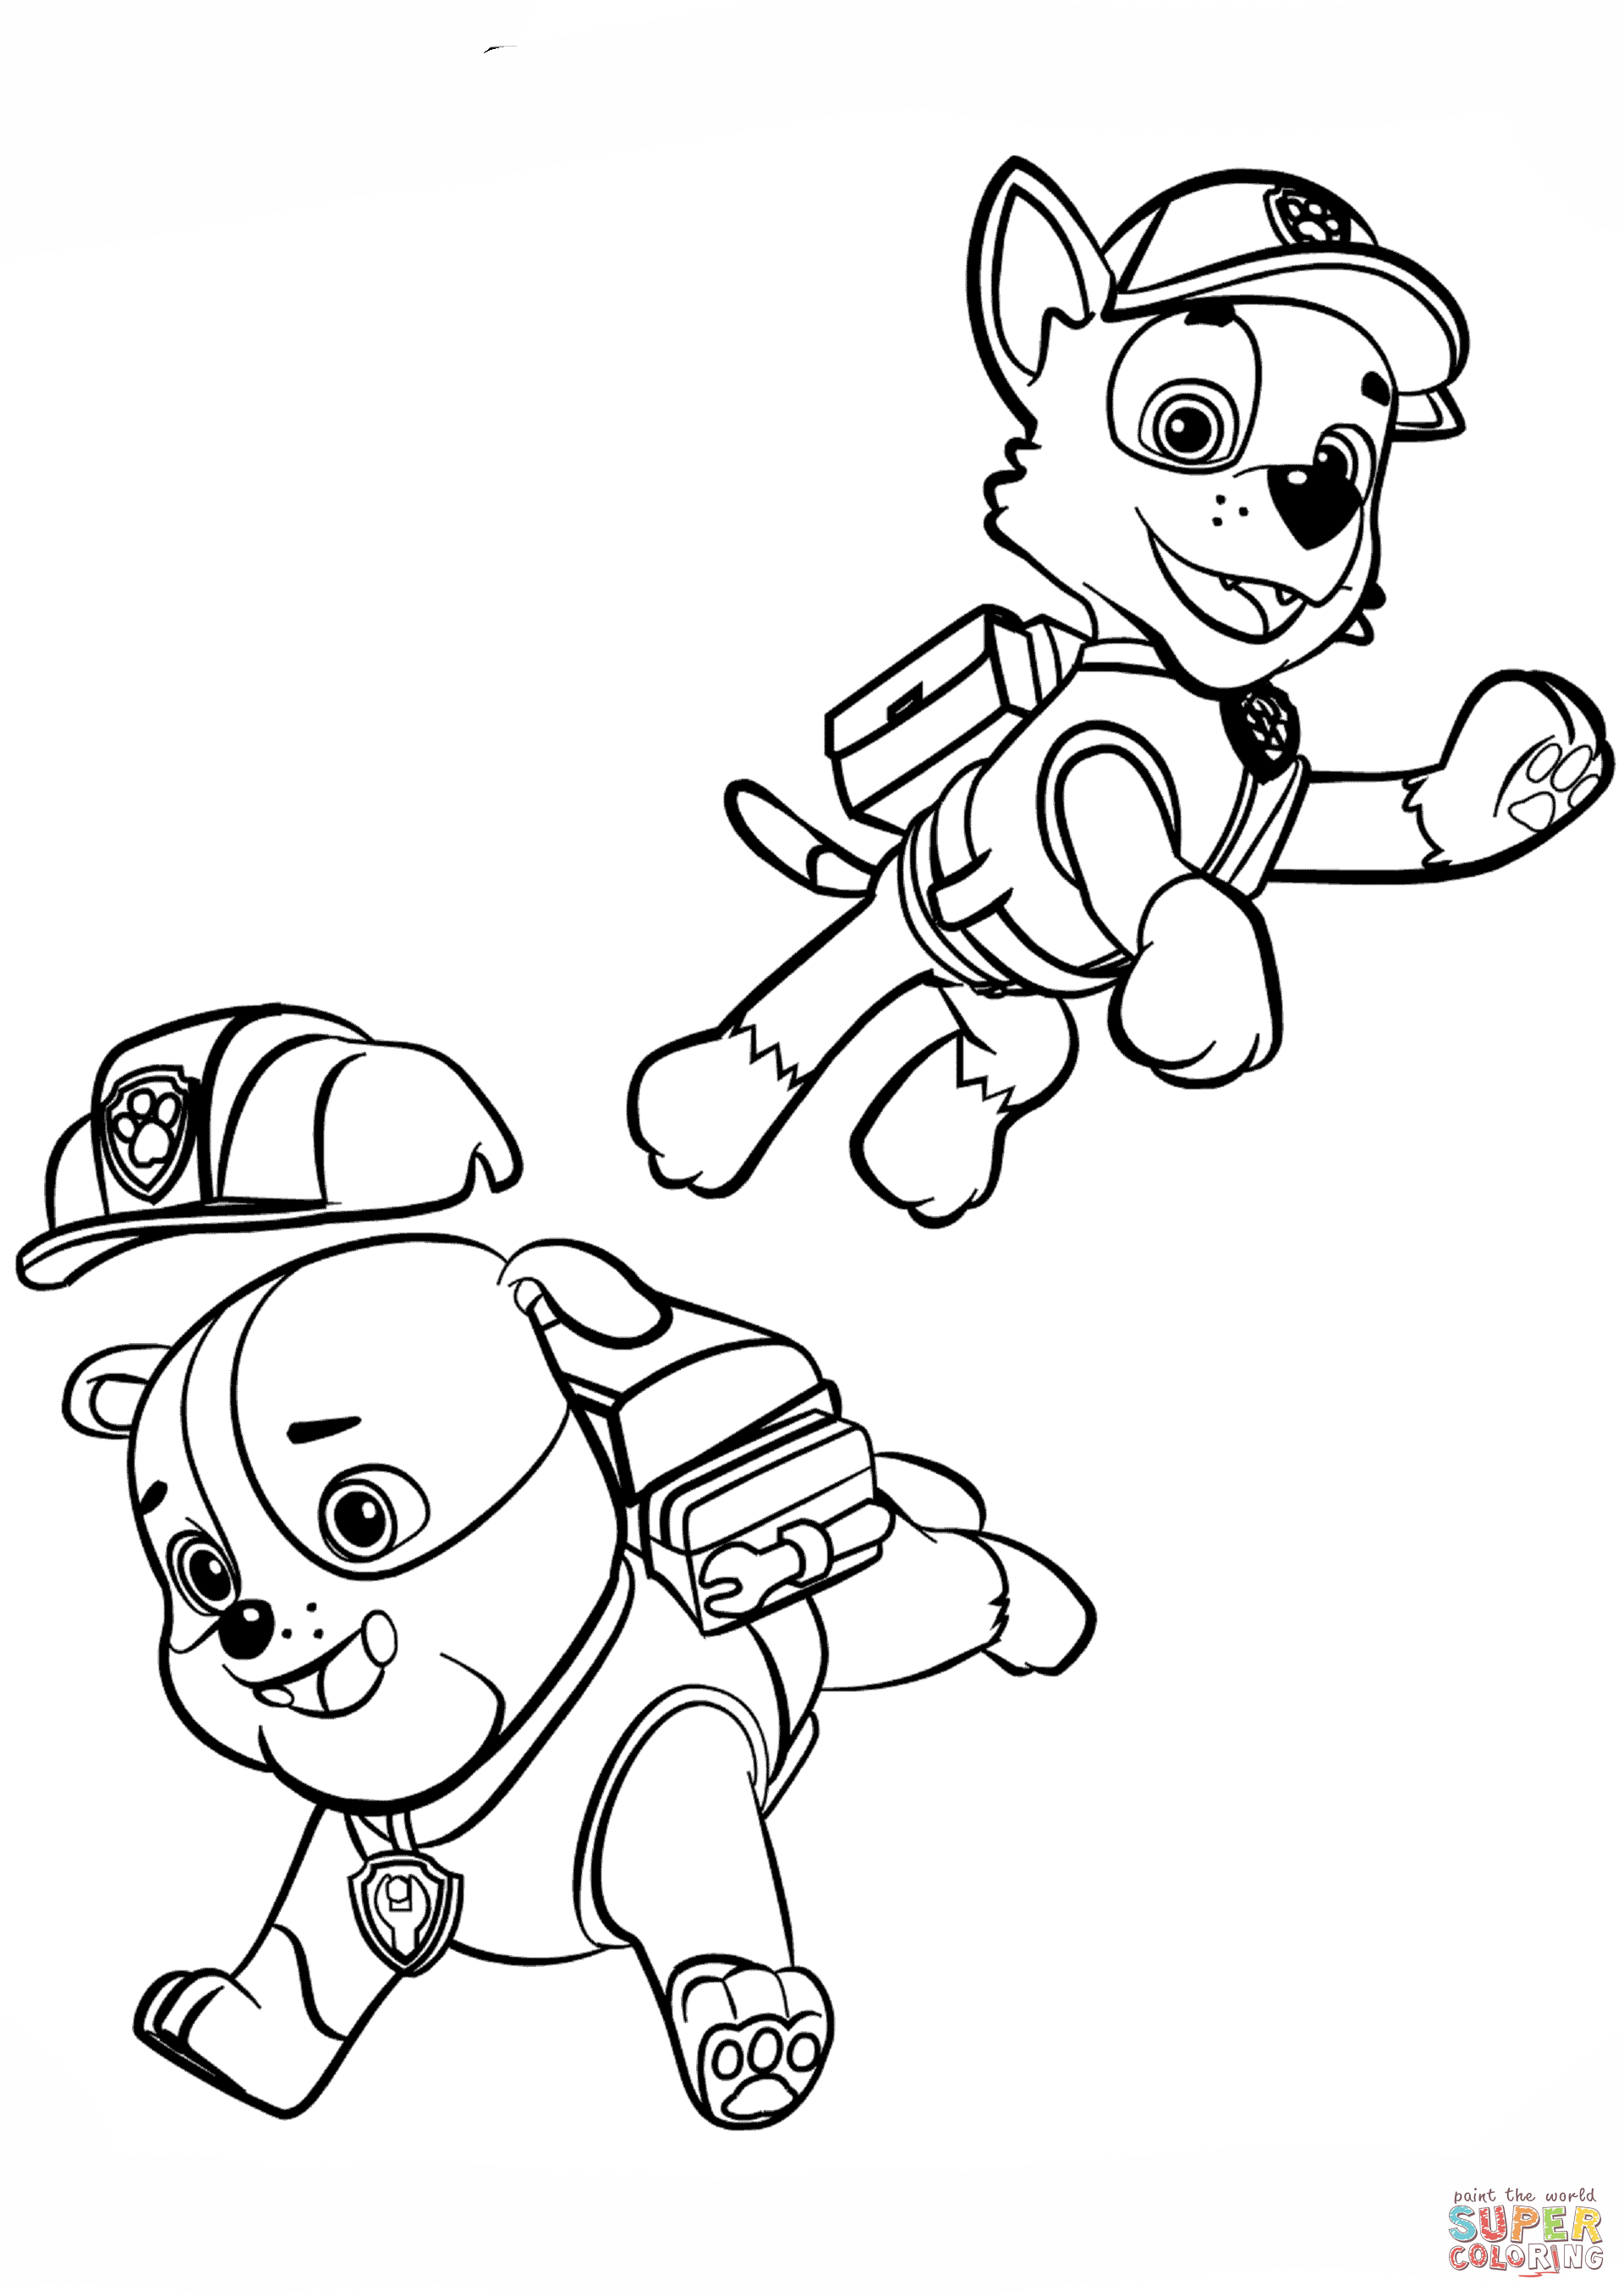 Pin By Anita Macklin On Cameo Silhouette Paw Patrol Coloring Paw Patrol Coloring Pages Birthday Coloring Pages